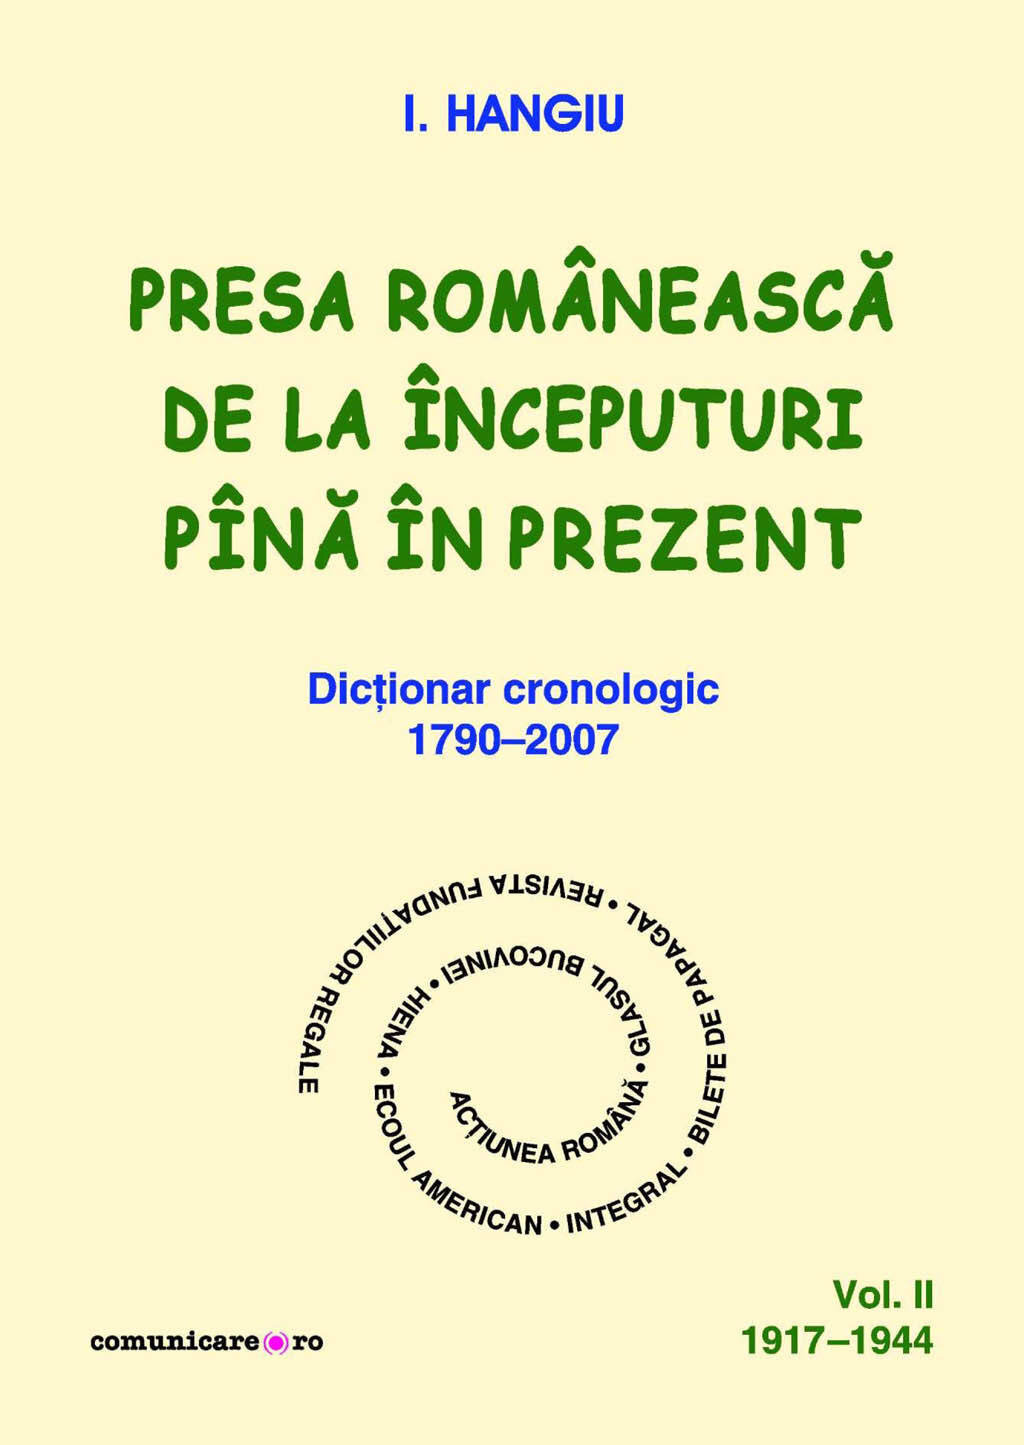 Presa romaneasca de la inceputuri pina in prezent. Dictionar cronologic 1790-2007 (Vol. II, 1917-1944) (eBook)